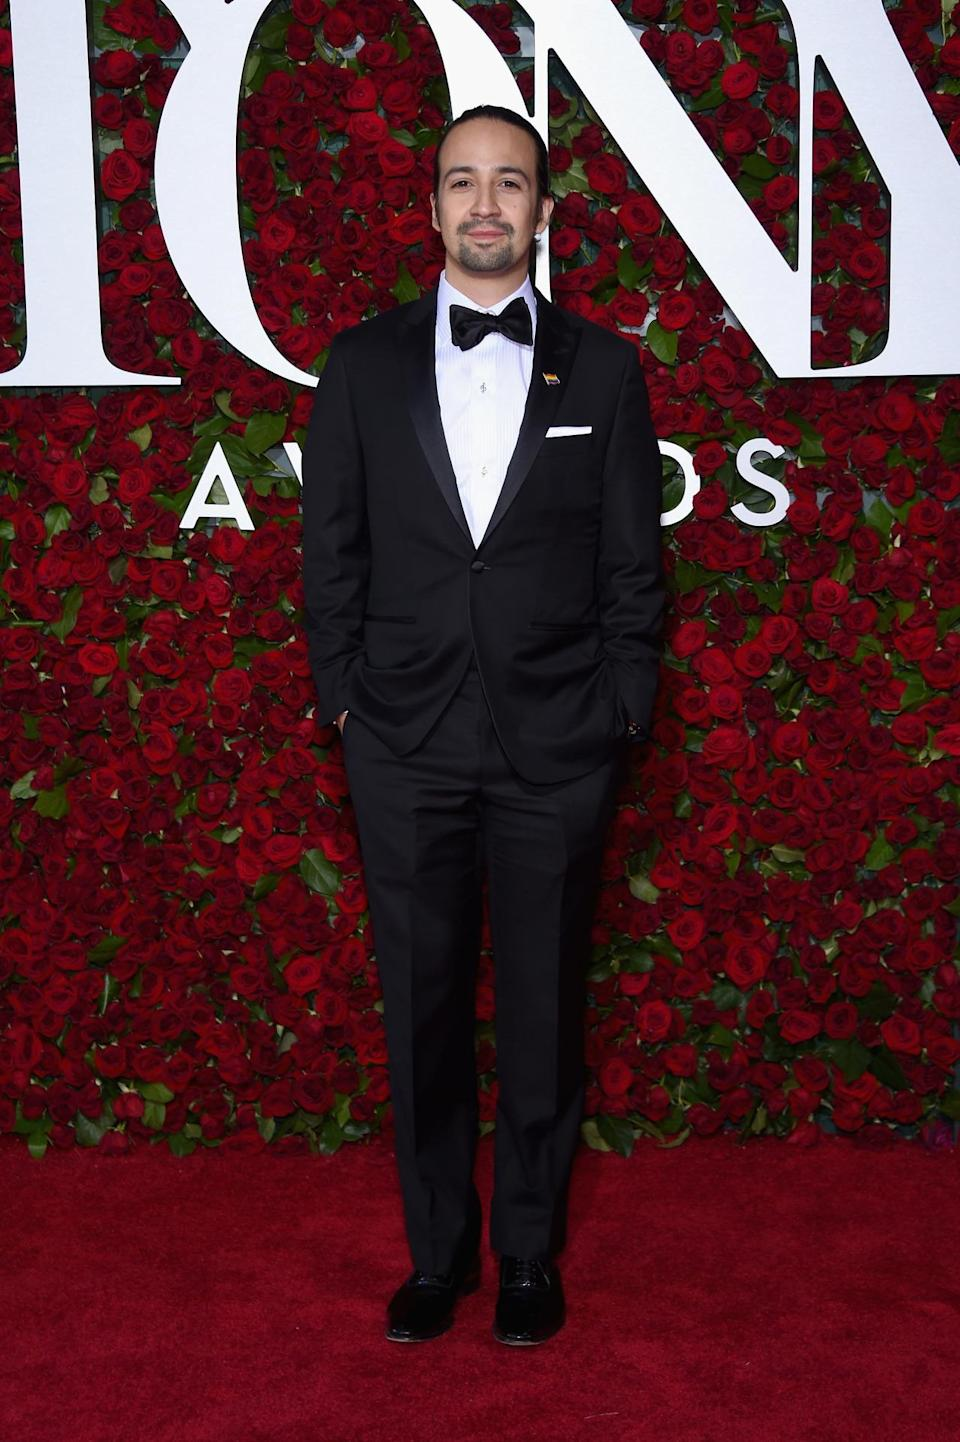 "<p>The man of the night, who was personally nominated for three awards — <i>Hamilton </i>got 16 noms in total — said the ""best thing about the Tonys is that we get to celebrate under the same roof as the people who make these amazing shows all year."" He added, ""On a day marked by such tragedy, we get to celebrate art and new works of art and new music and new plays. I couldn't imagine being anywhere else."" <i>(Photo: Getty Images)</i></p>"